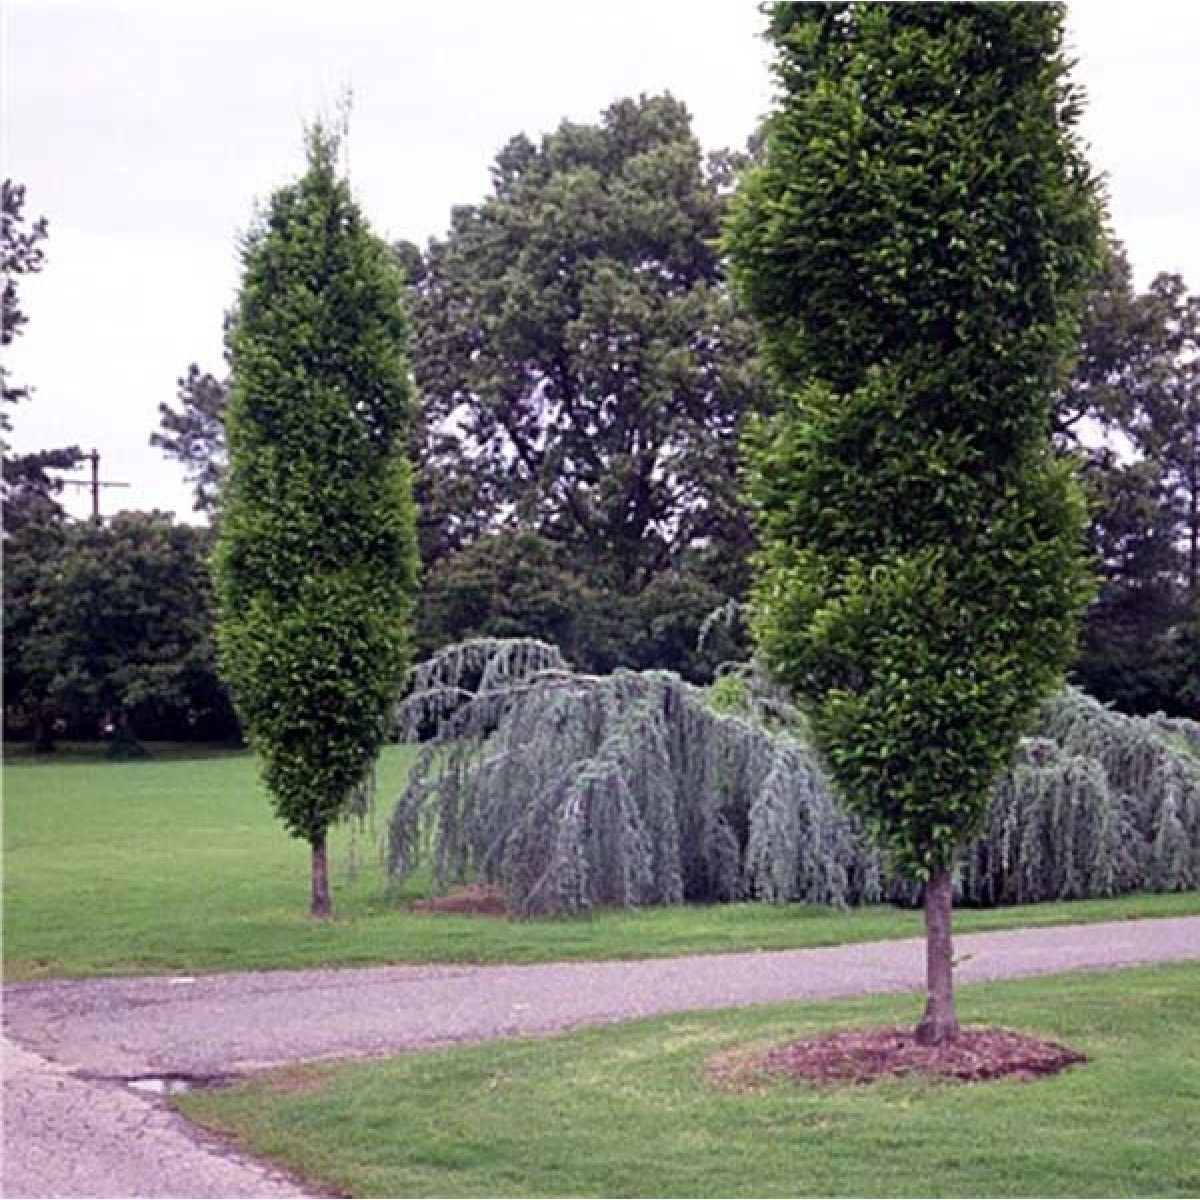 Trees For Small Spaces: Narrow Trees For Small Spaces